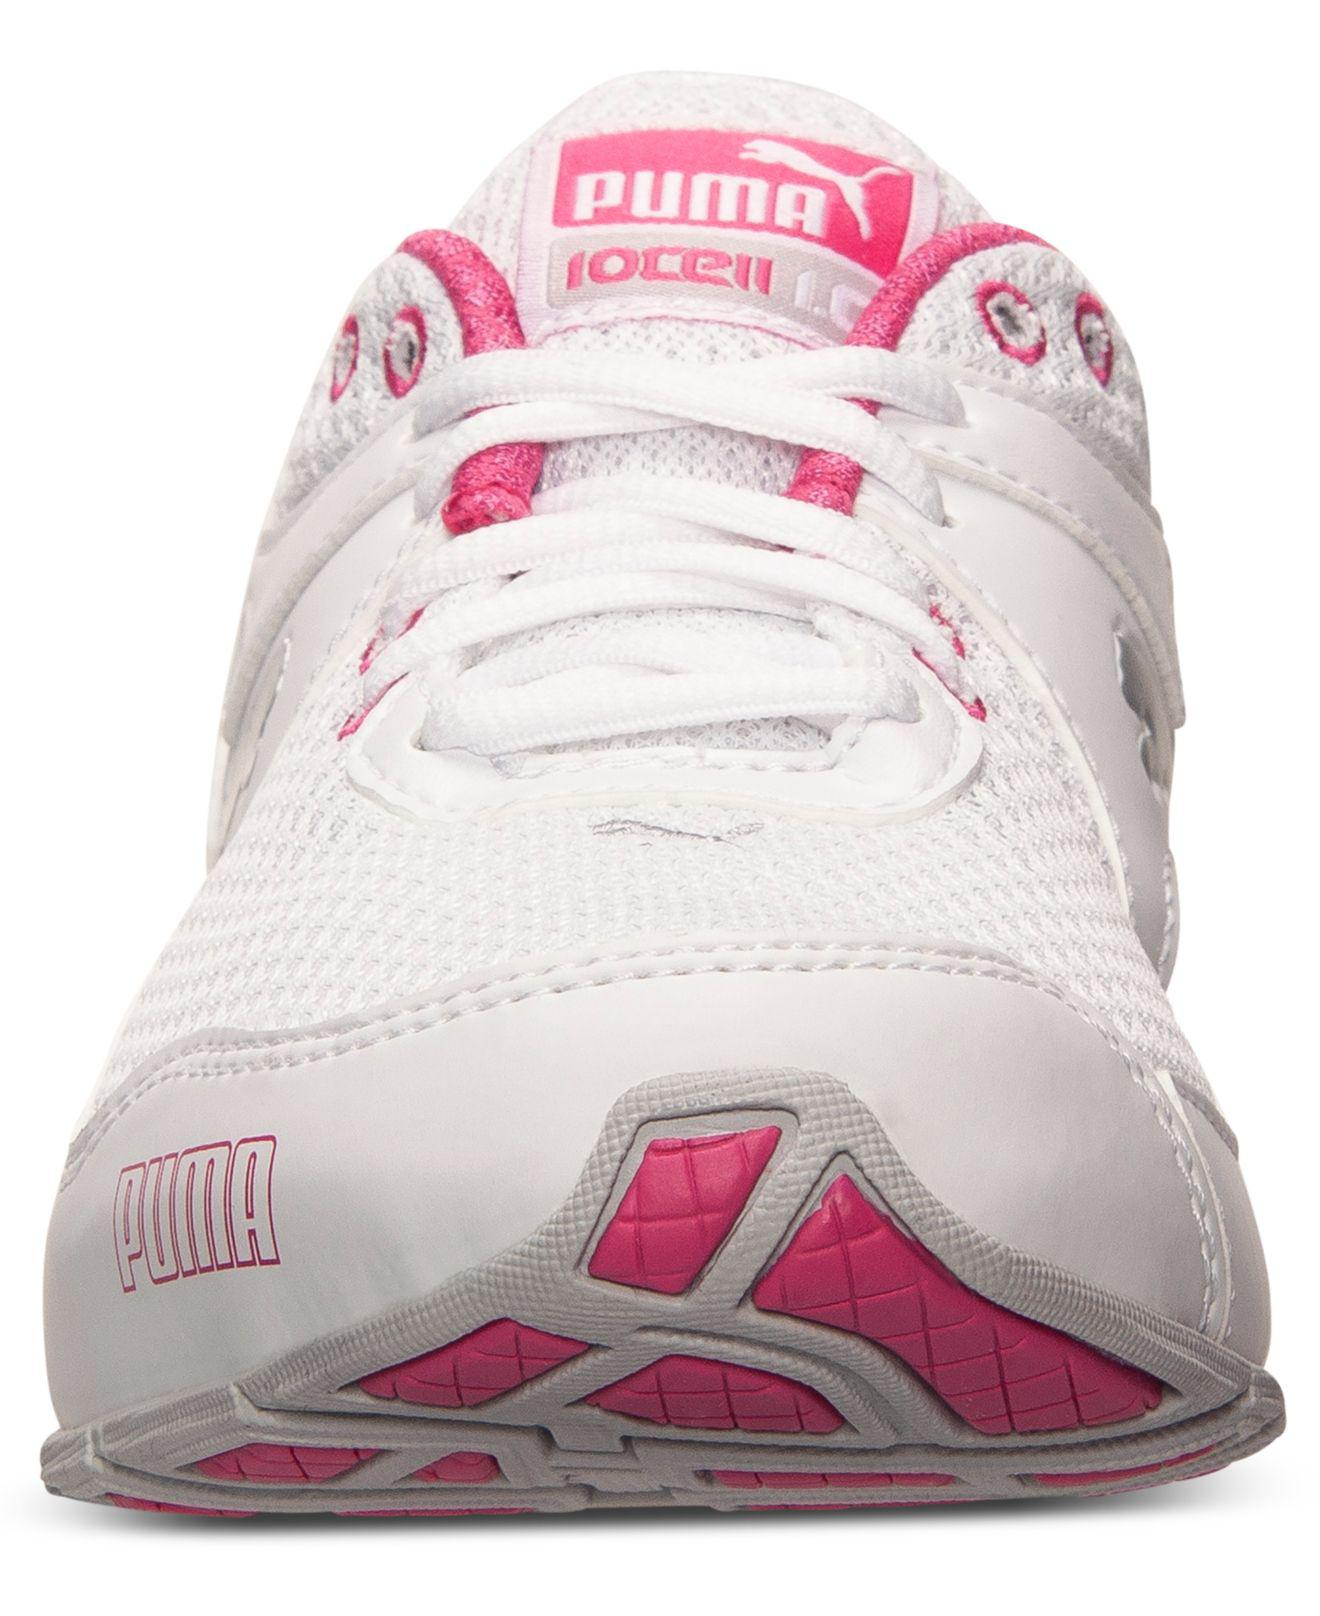 Lyst - Puma Women S Cell Riaze Ttm Running Sneakers From Finish Line ... afaef5f9a